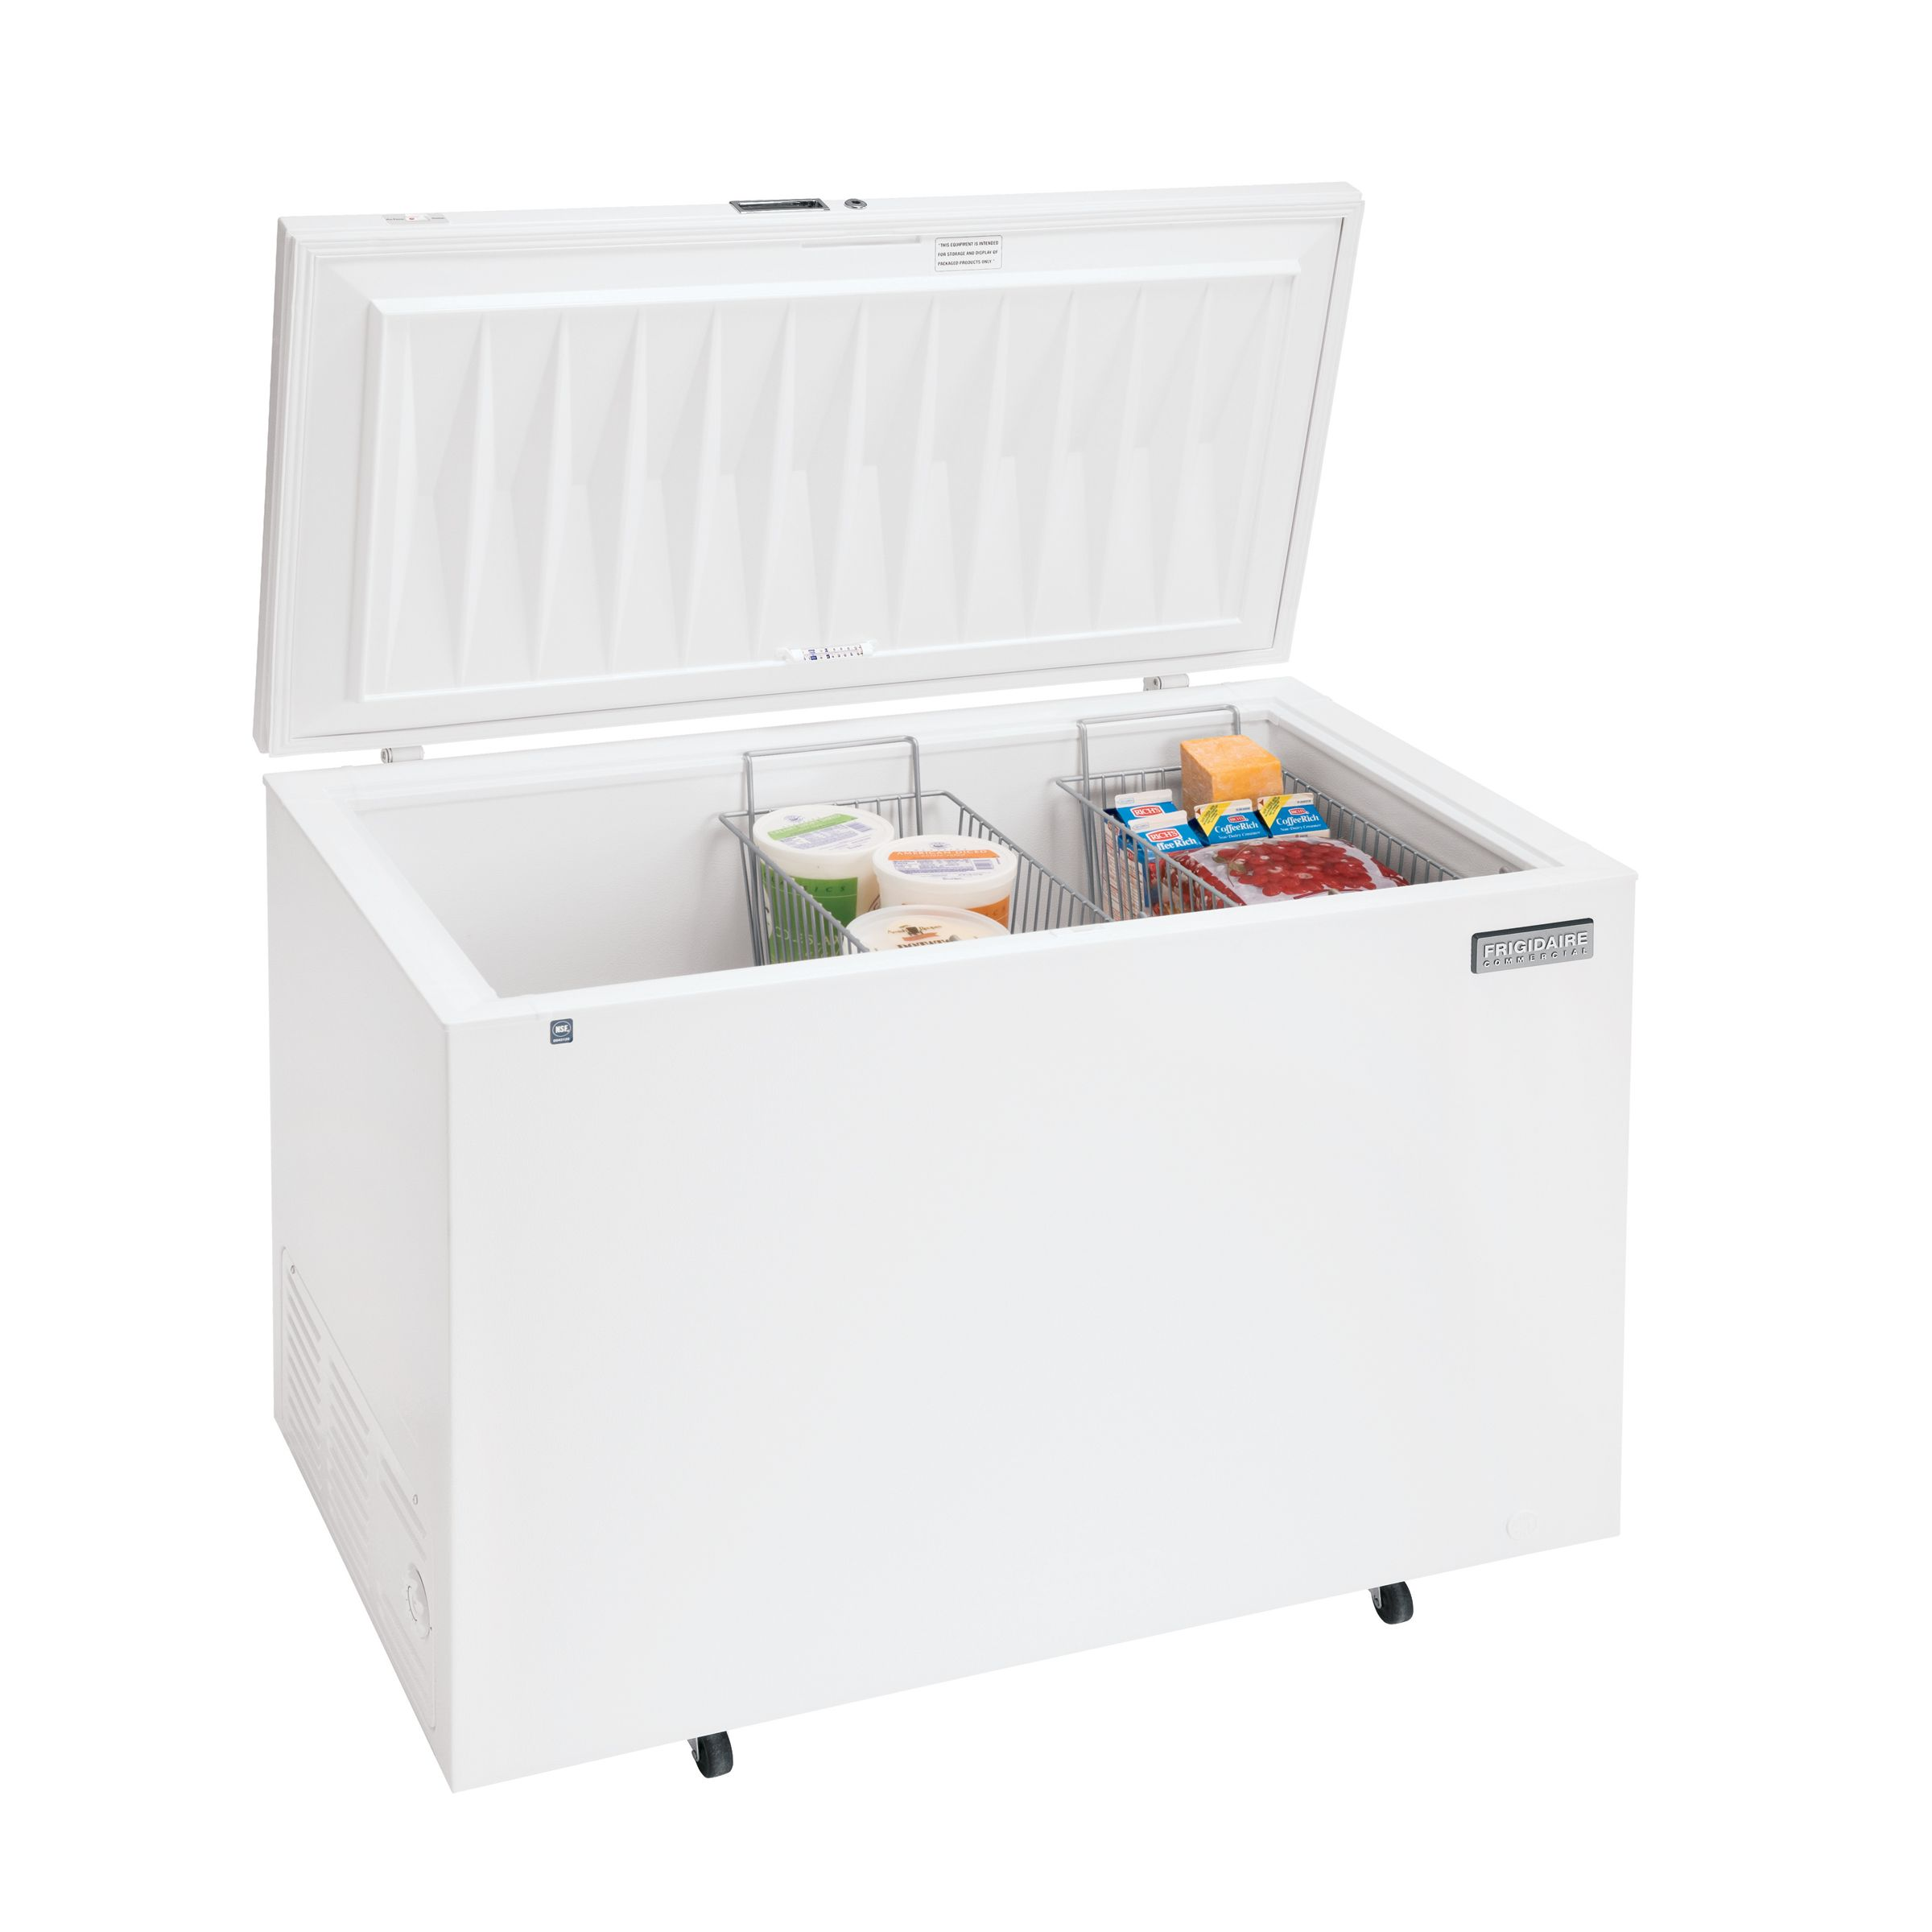 Kmart Freezer Chest Freezers Bbt